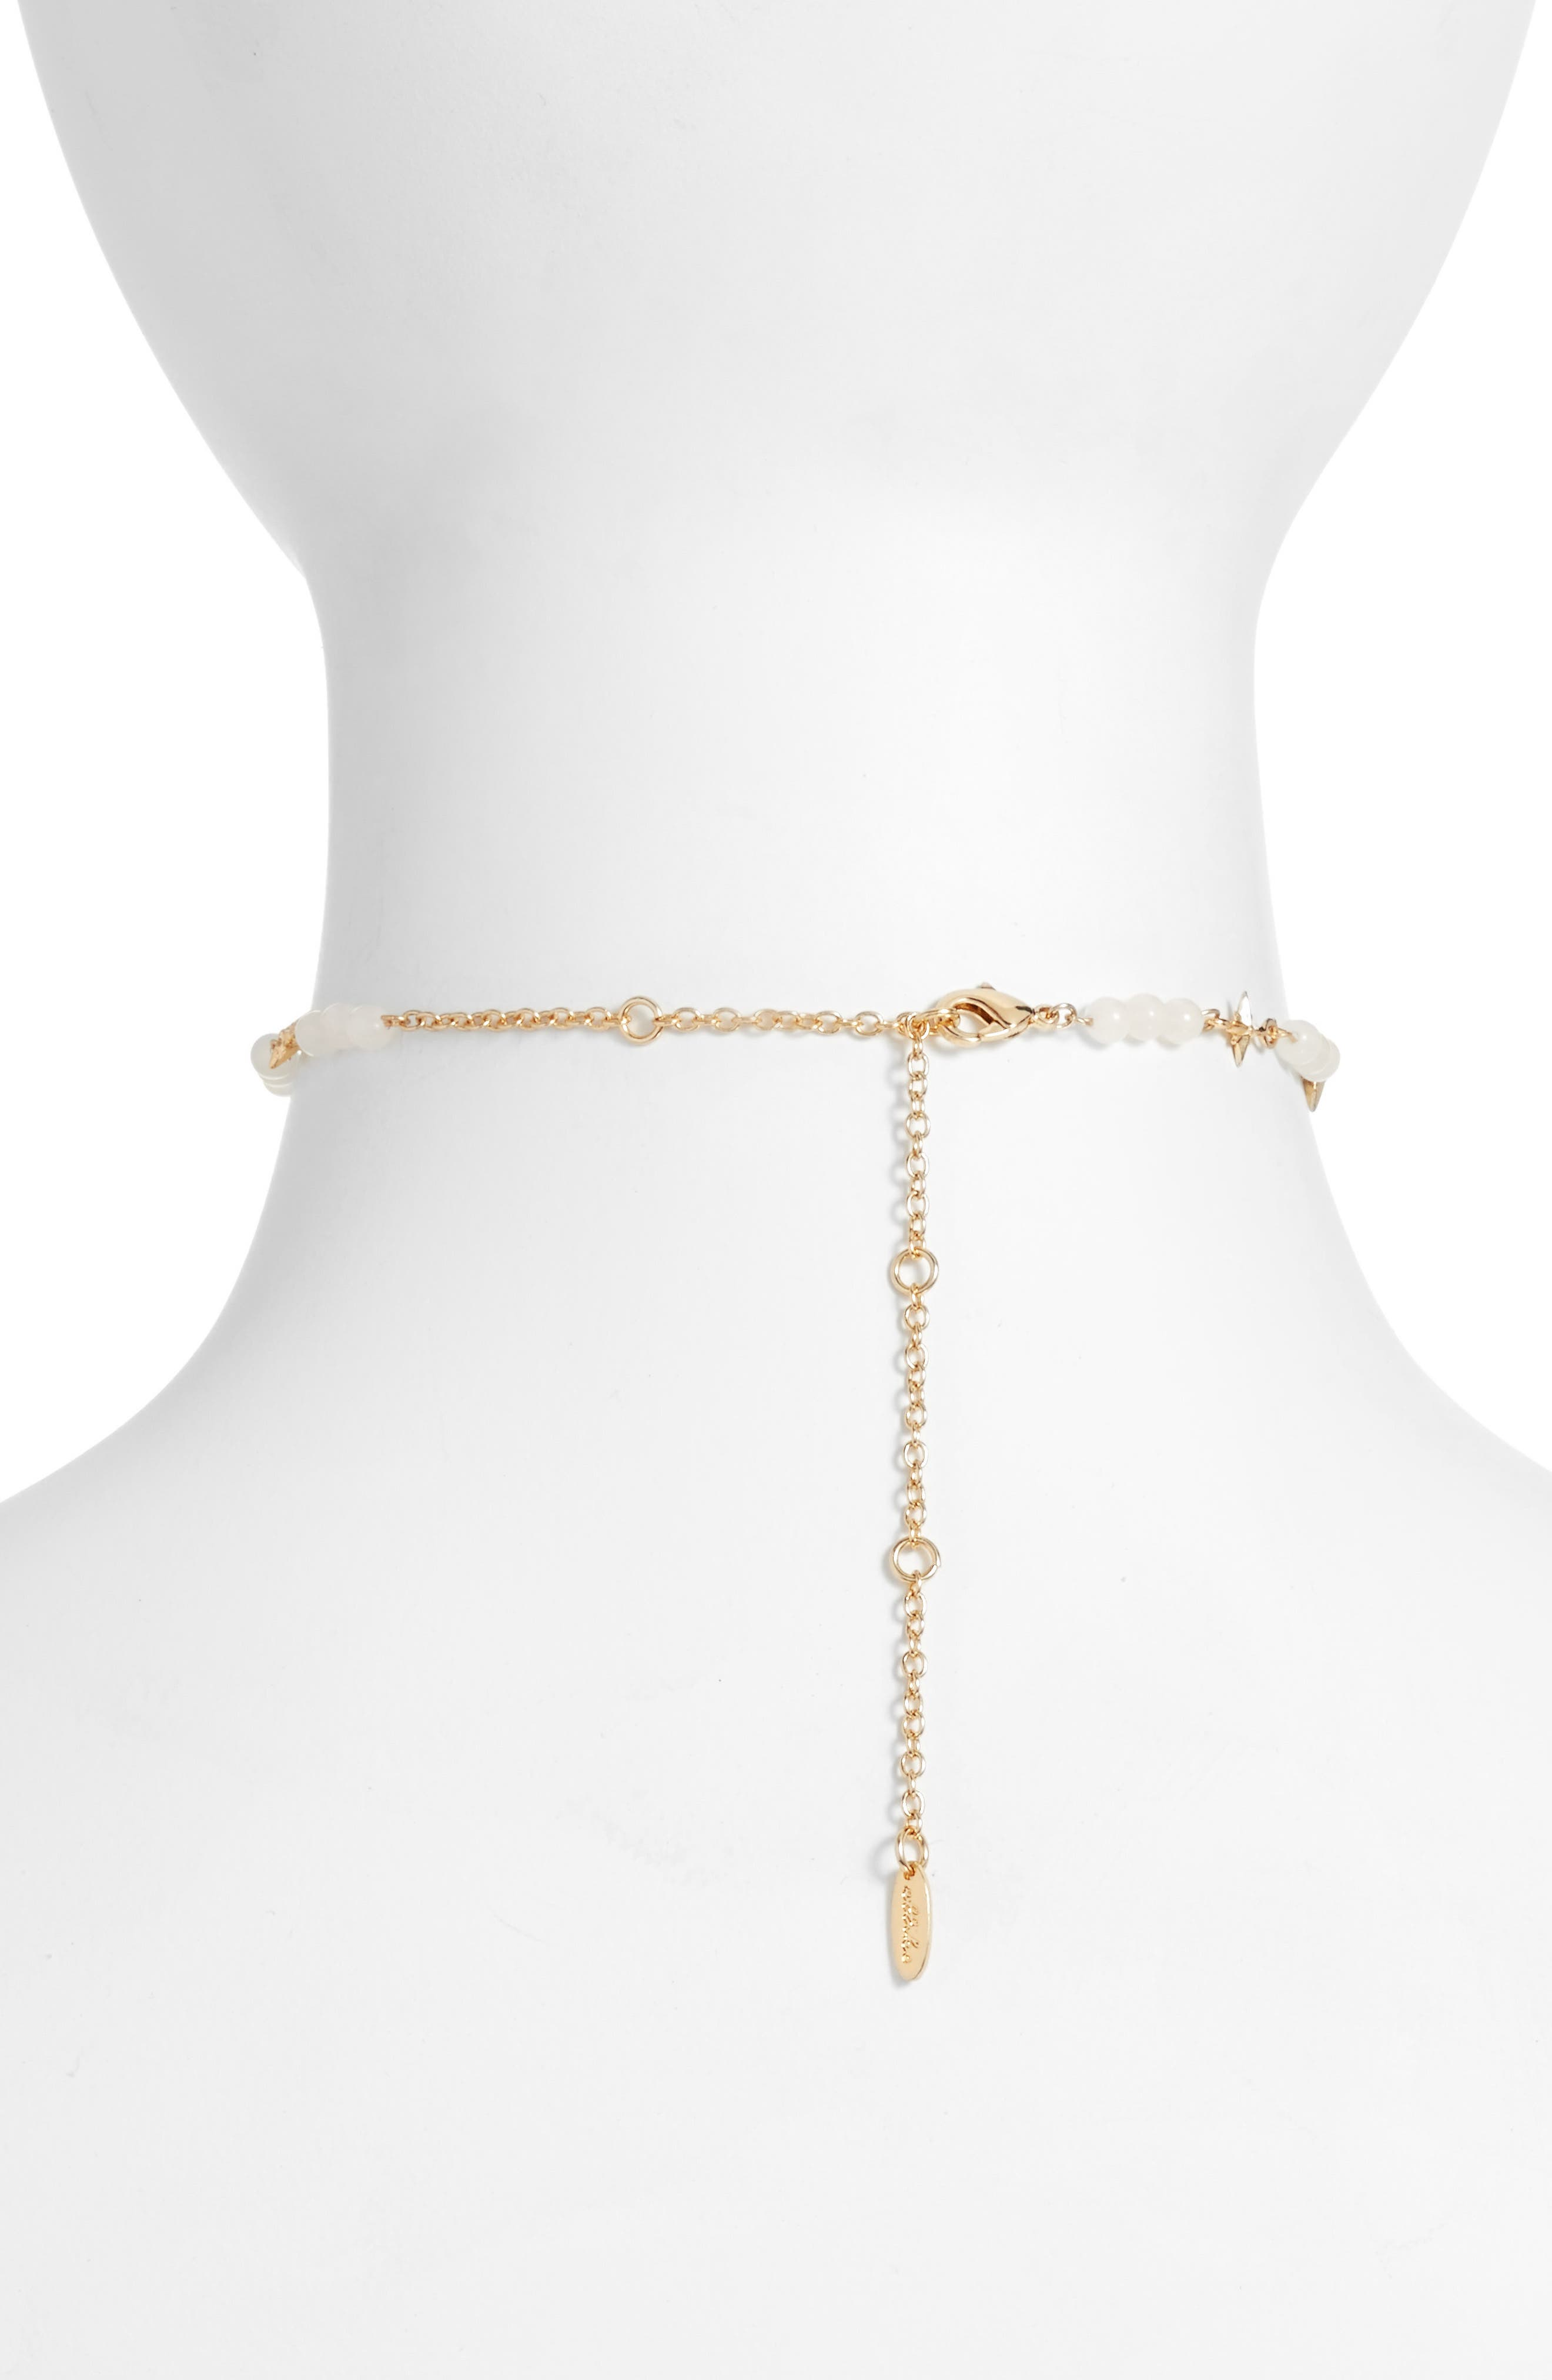 Star Chain Choker,                             Alternate thumbnail 2, color,                             710